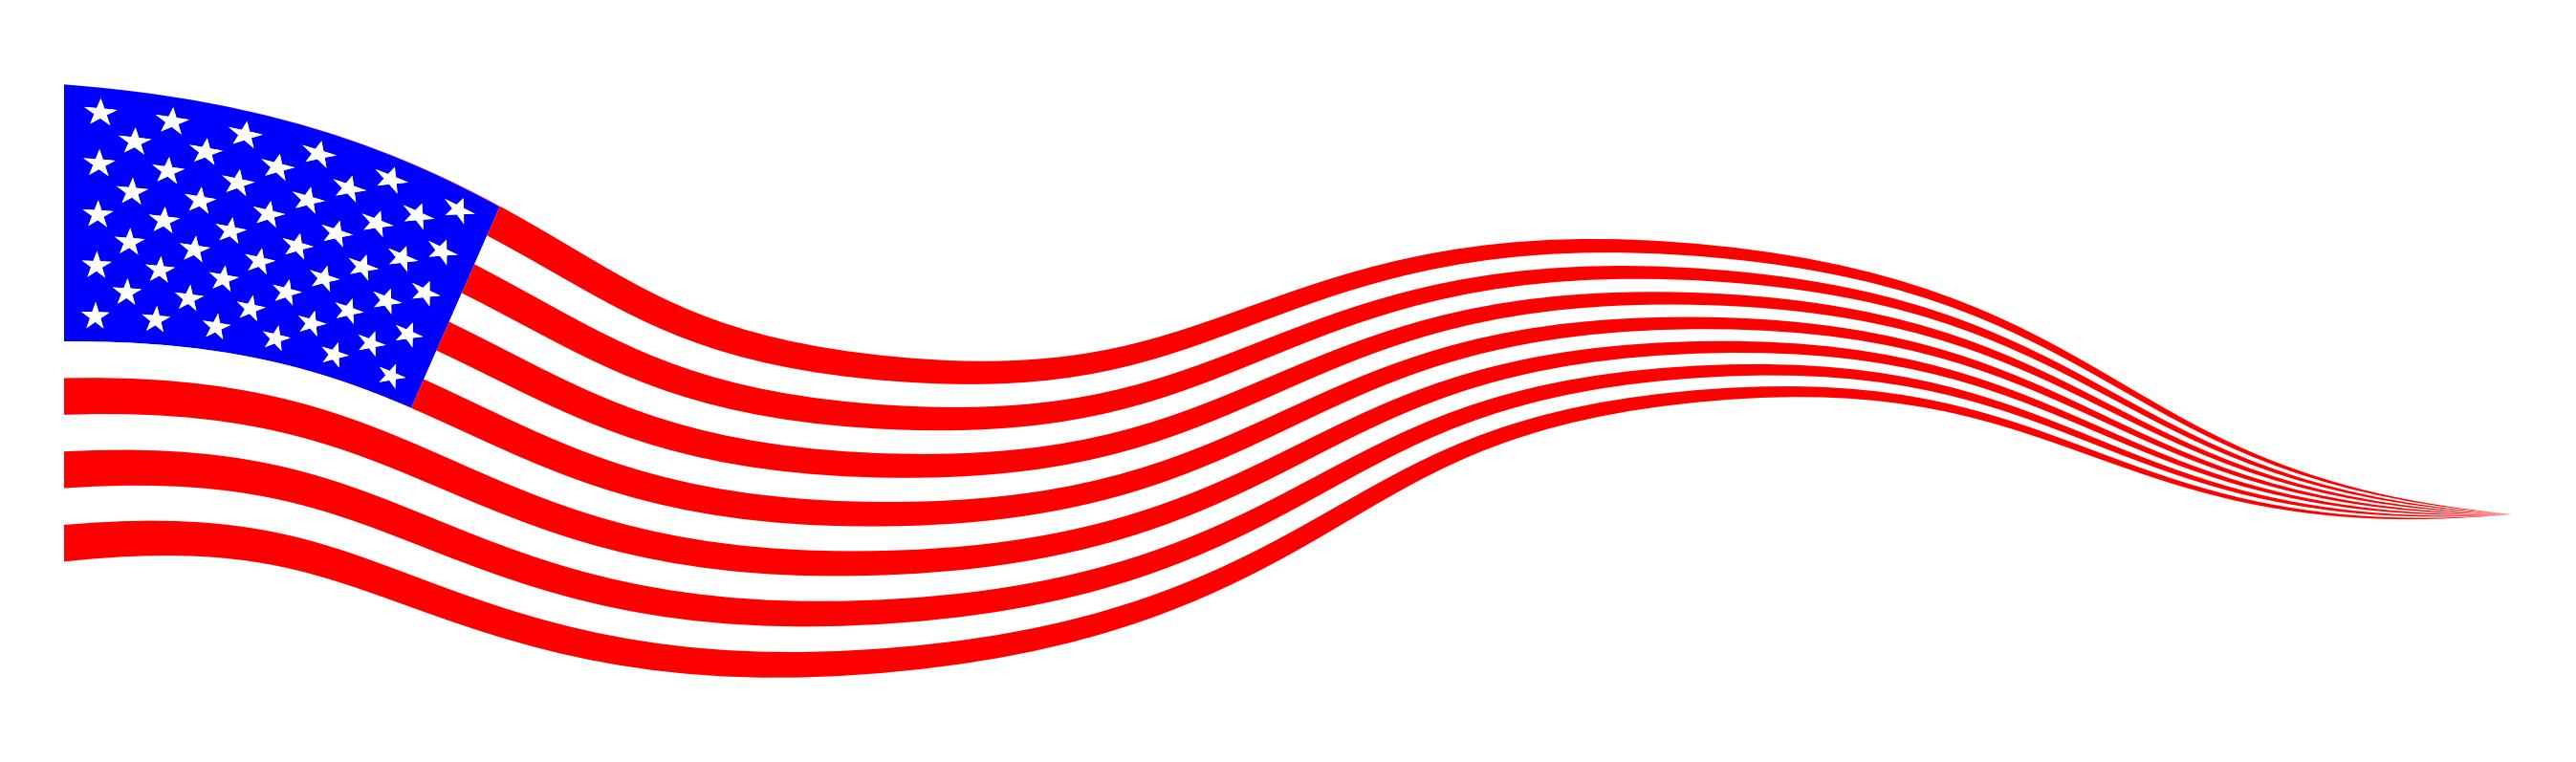 Wavy usa banner design. Banners clipart american flag